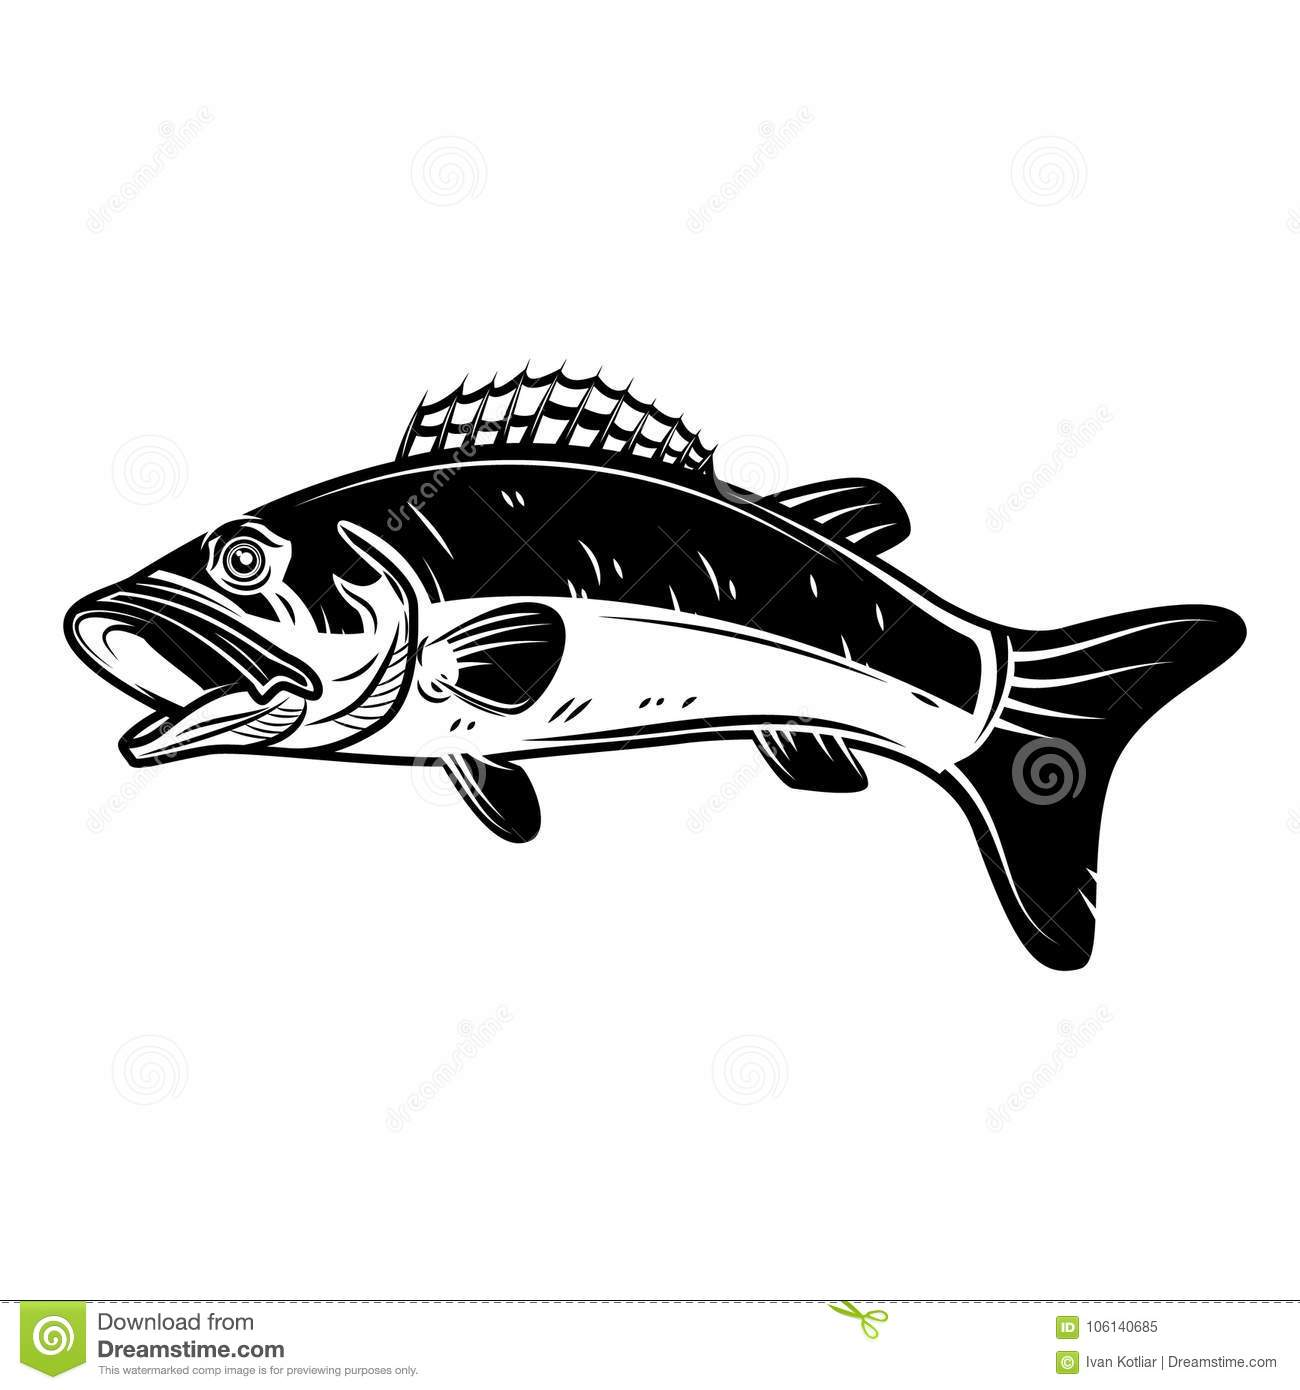 perch fish icon isolated on white background  design element for logo  label  emblem  sign